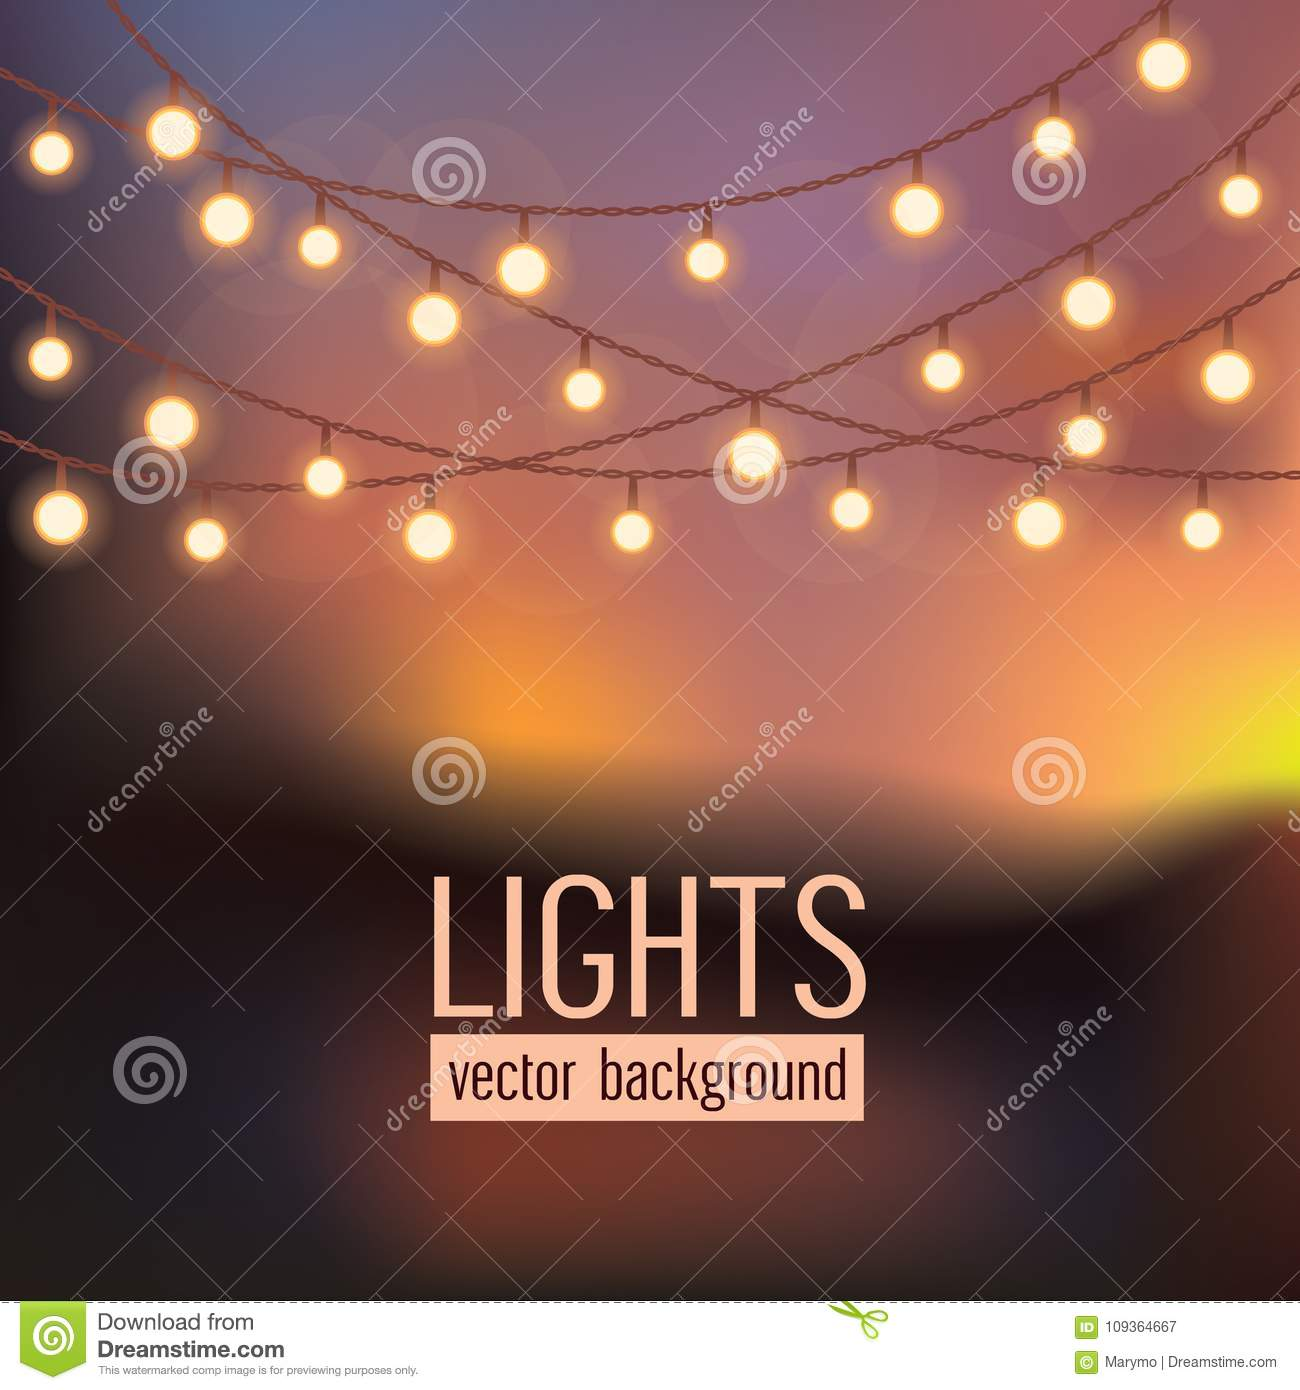 Set of glowing string lights on abstract evening sky background. Vector illustration